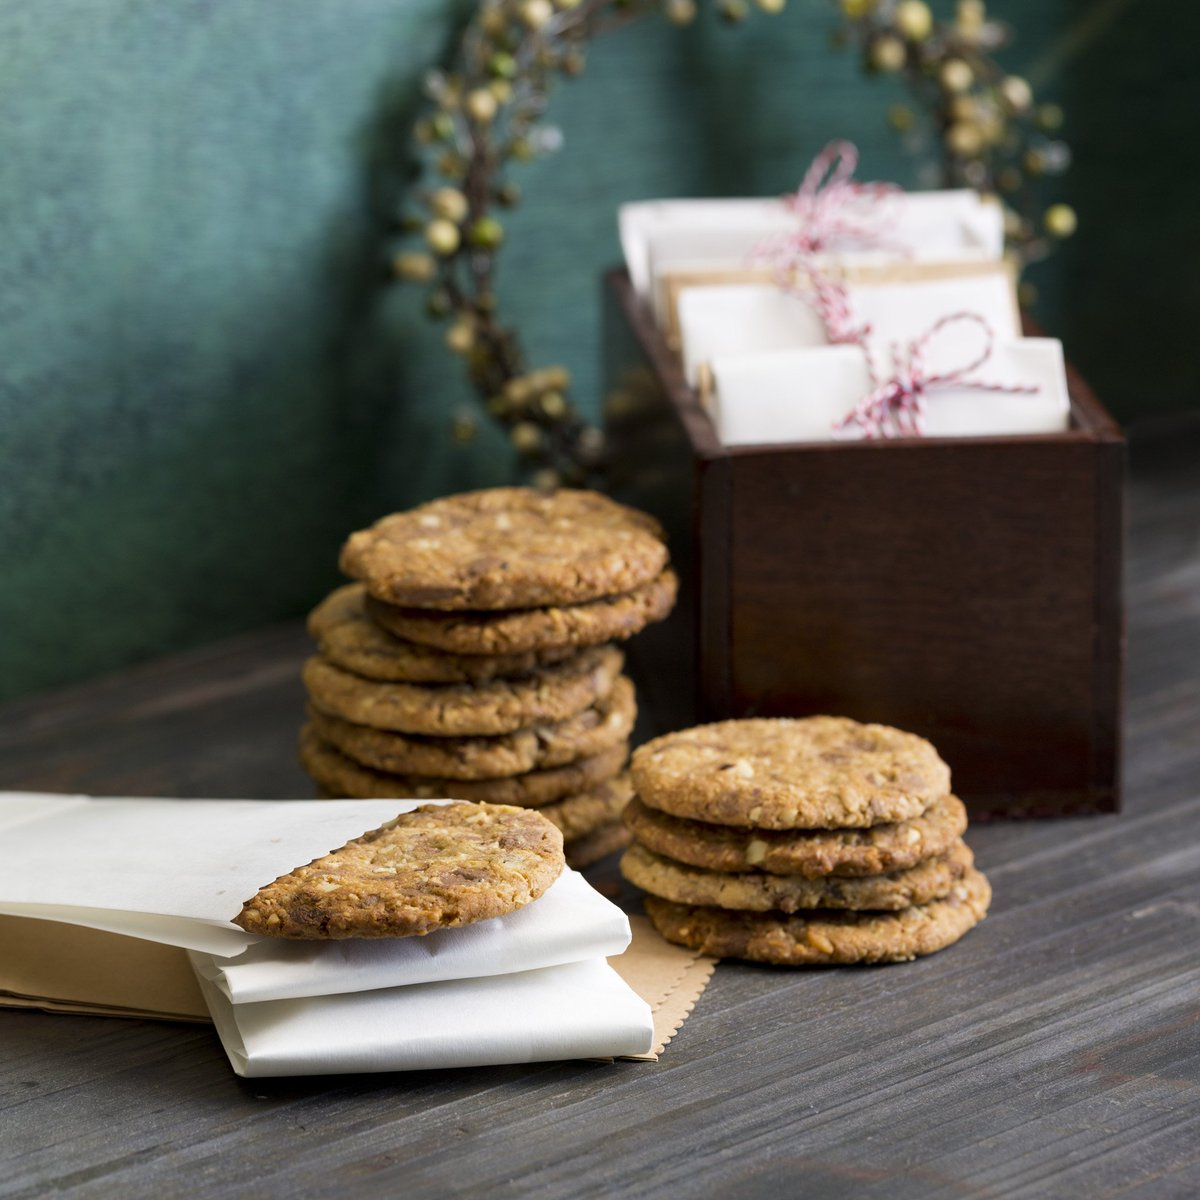 Thermomix Australia On Twitter Hooray It S Cookie Day Celebrate